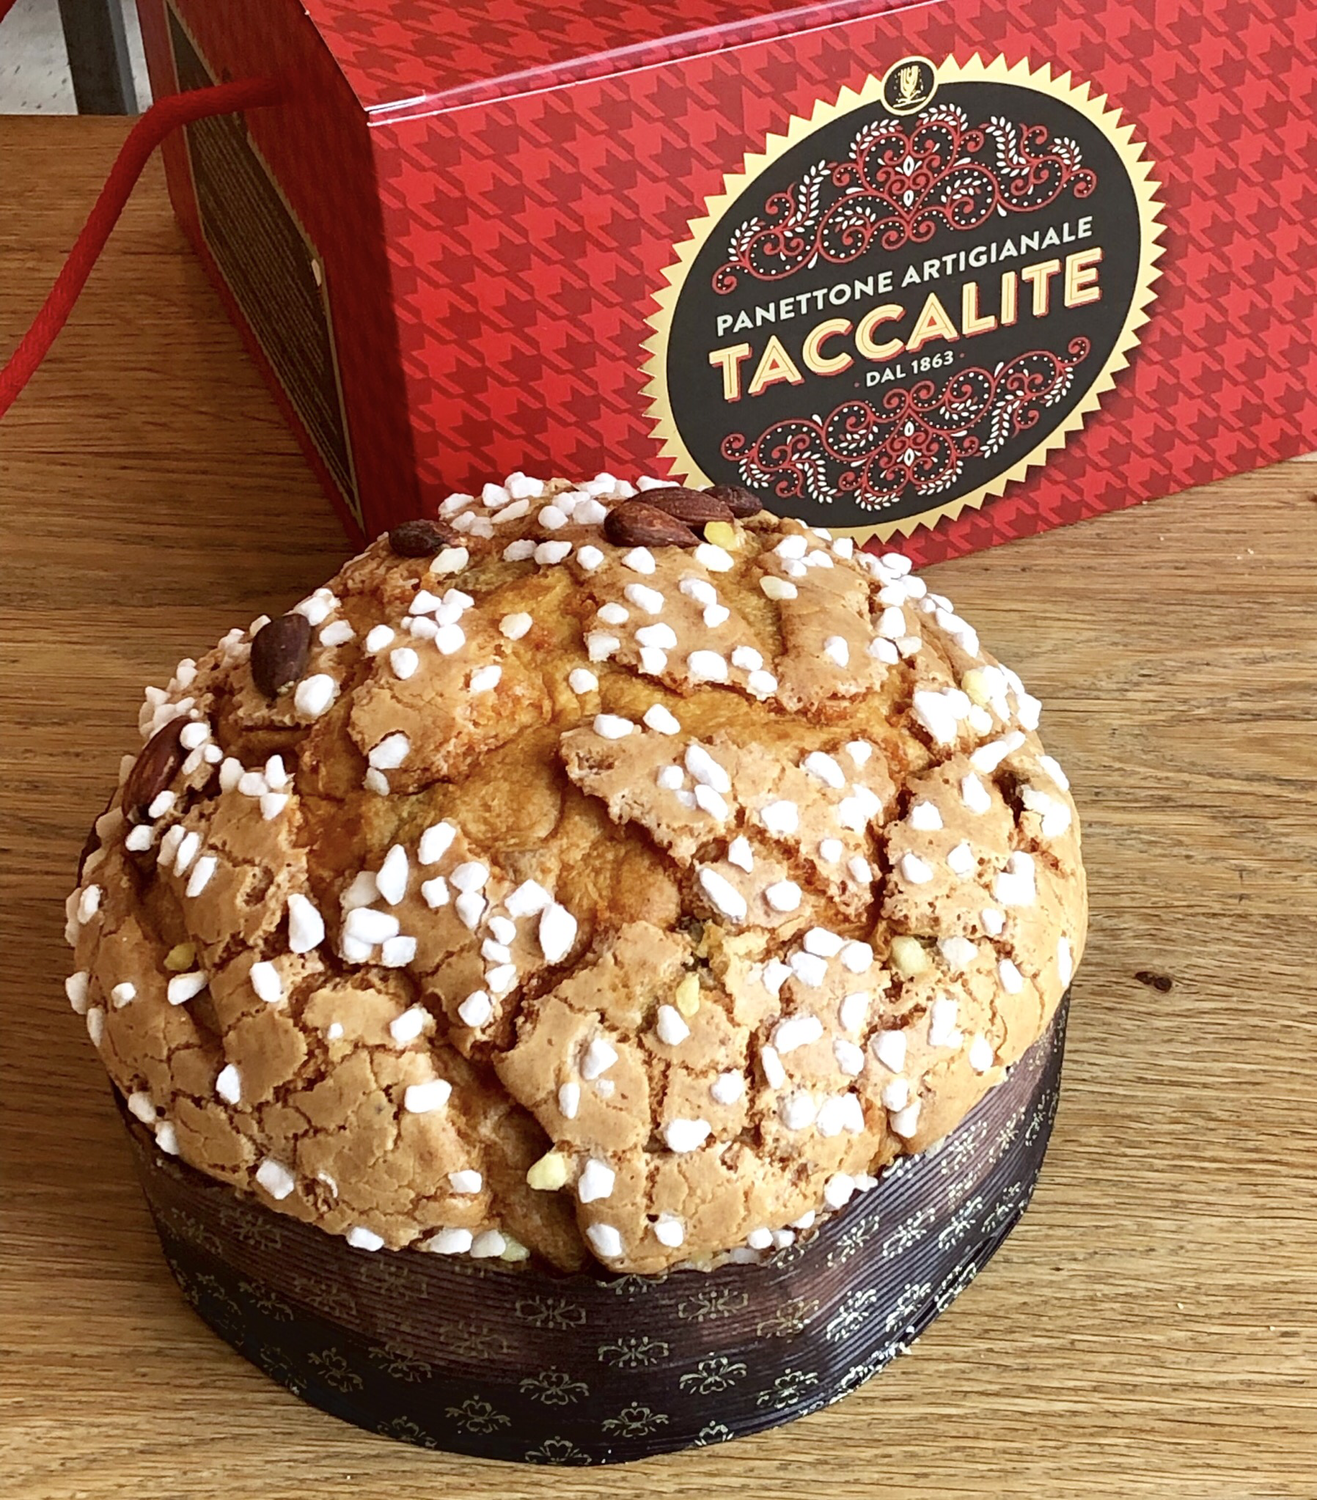 TRADITIONAL PANETTONE  - FORNO TACCALITE